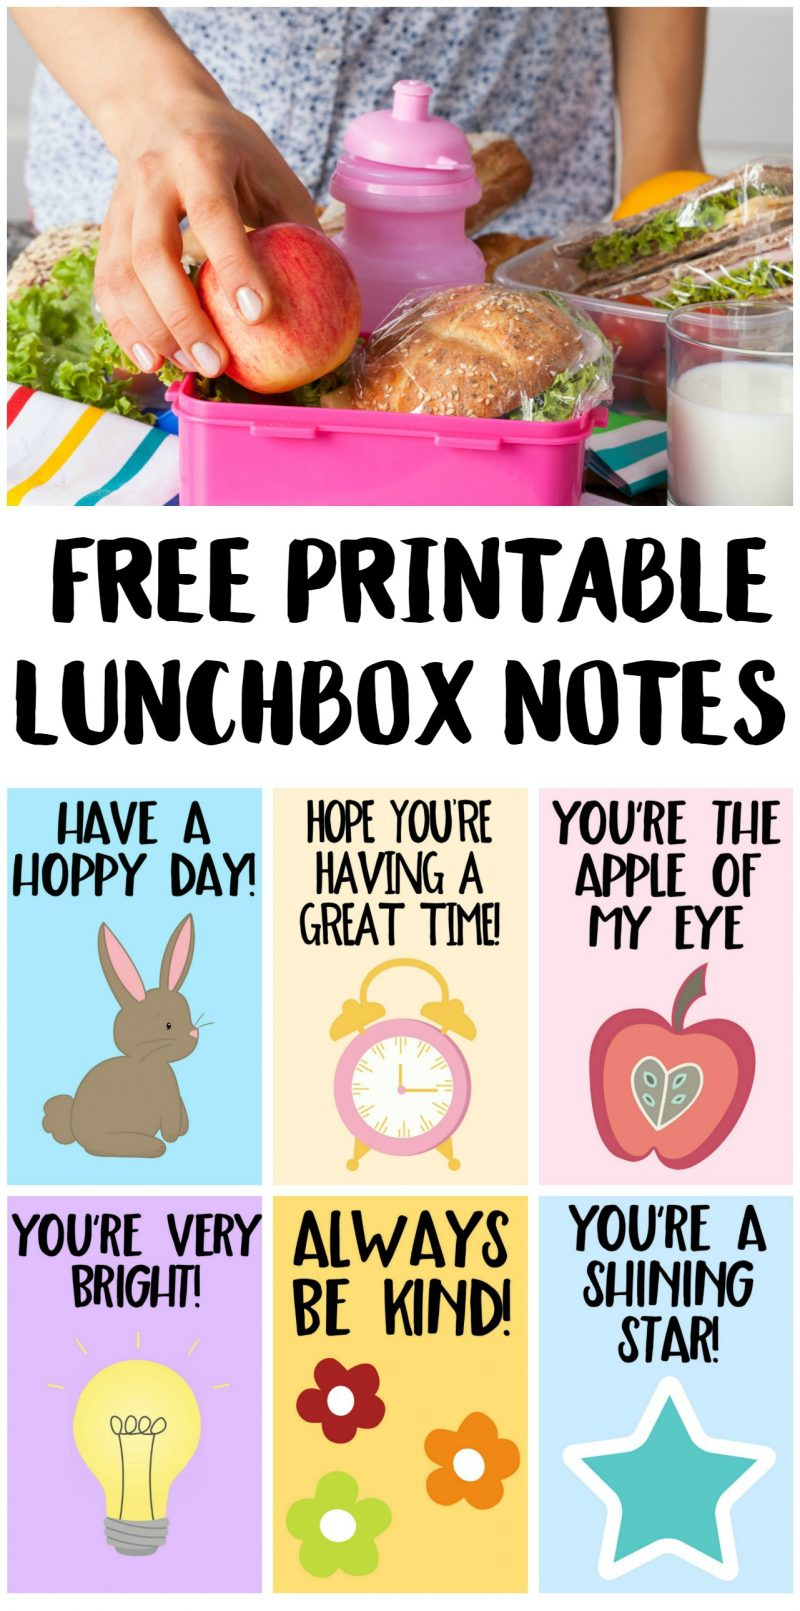 Back to school means back to school lunches! These free printable lunchbox notes will have boys and girls smiling every time they open their lunchbox- and your kids will know mom packed their lunch with a little extra love.